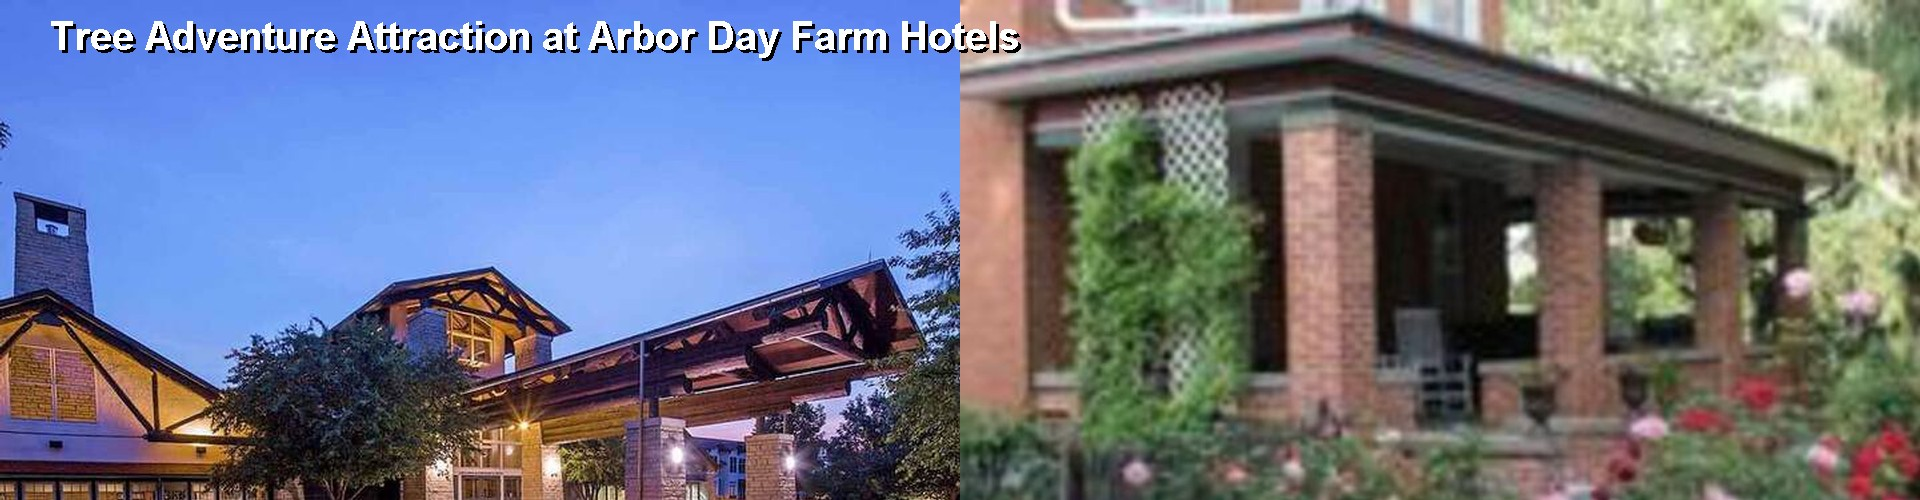 4 Best Hotels near Tree Adventure Attraction at Arbor Day Farm